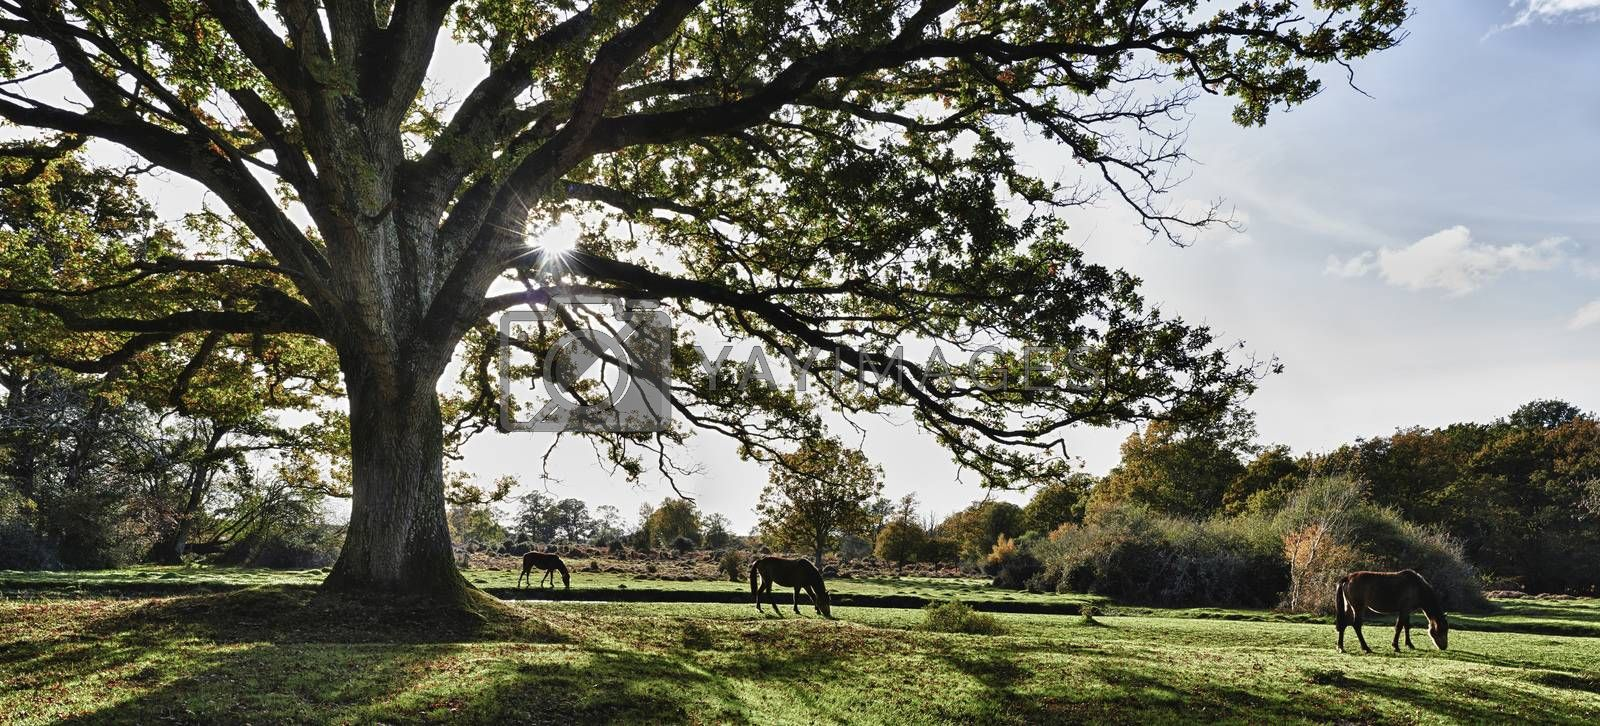 Panoramic view of wild hoses grazing under large tree in New Forest,Hampshire